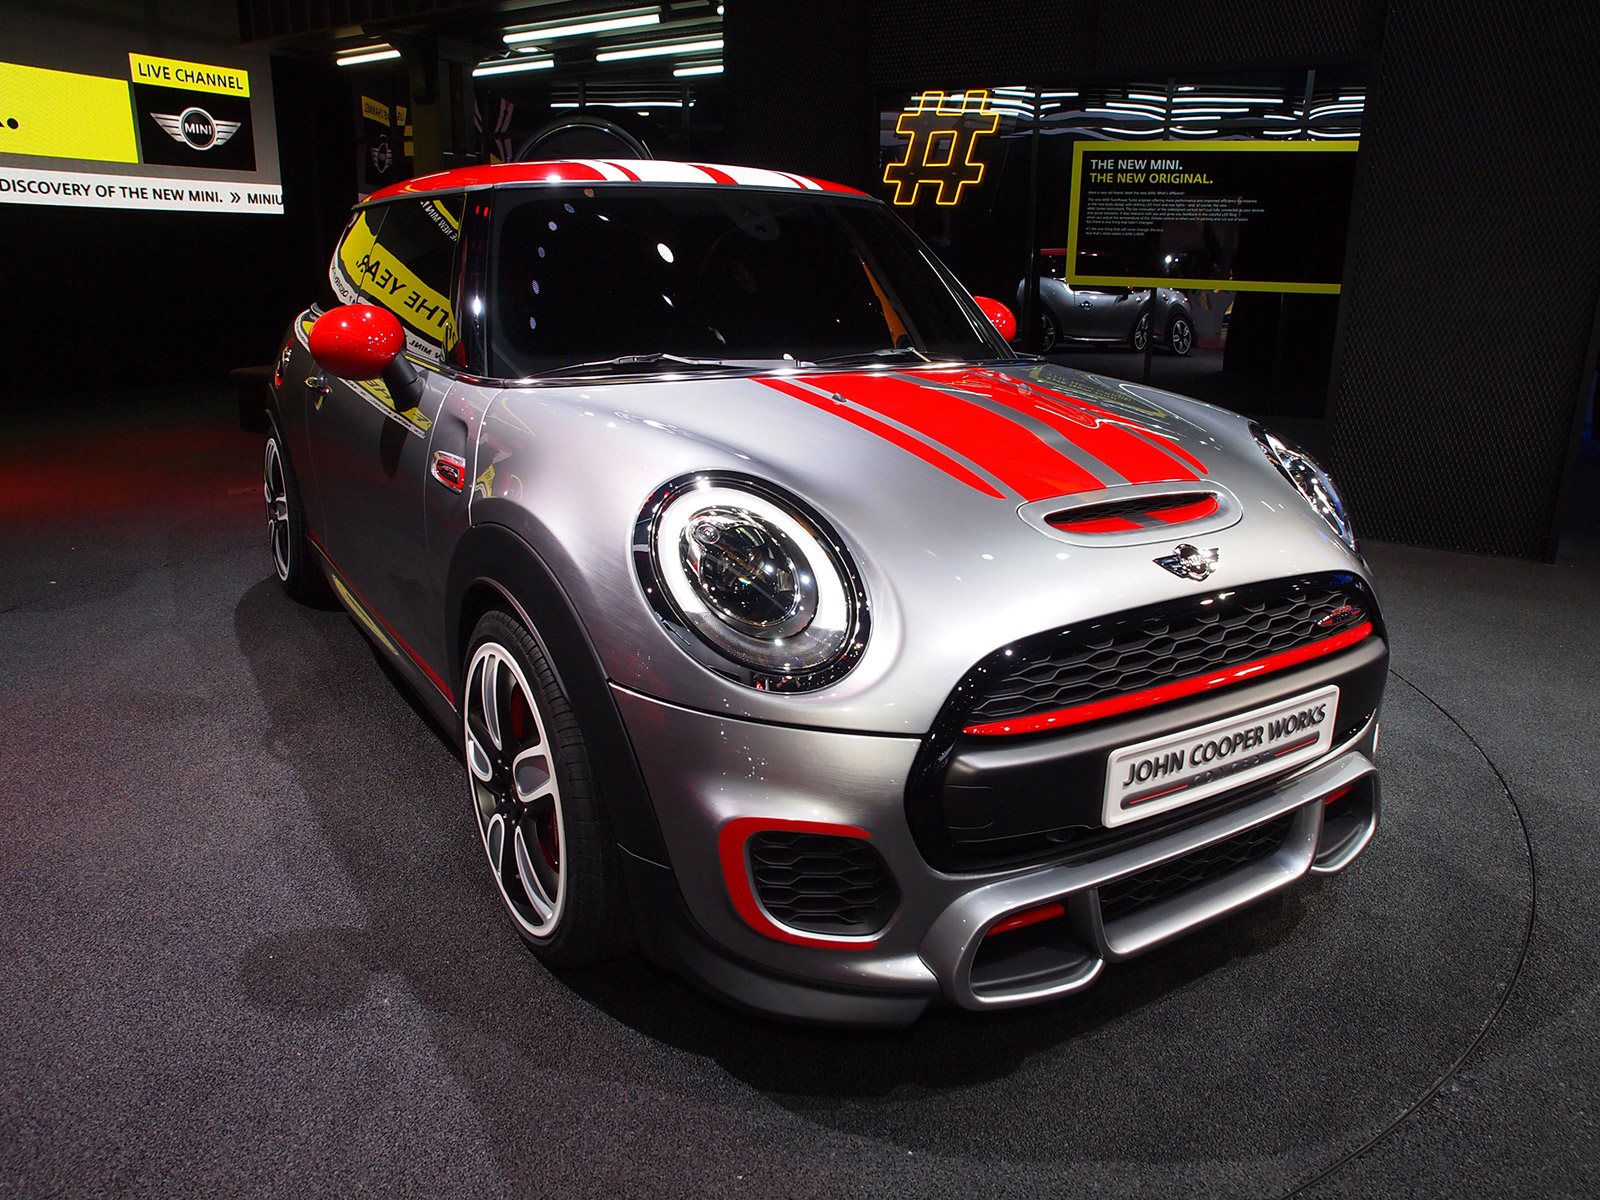 Next Gen Mini John Cooper Works To Pack About 230 Hp Report